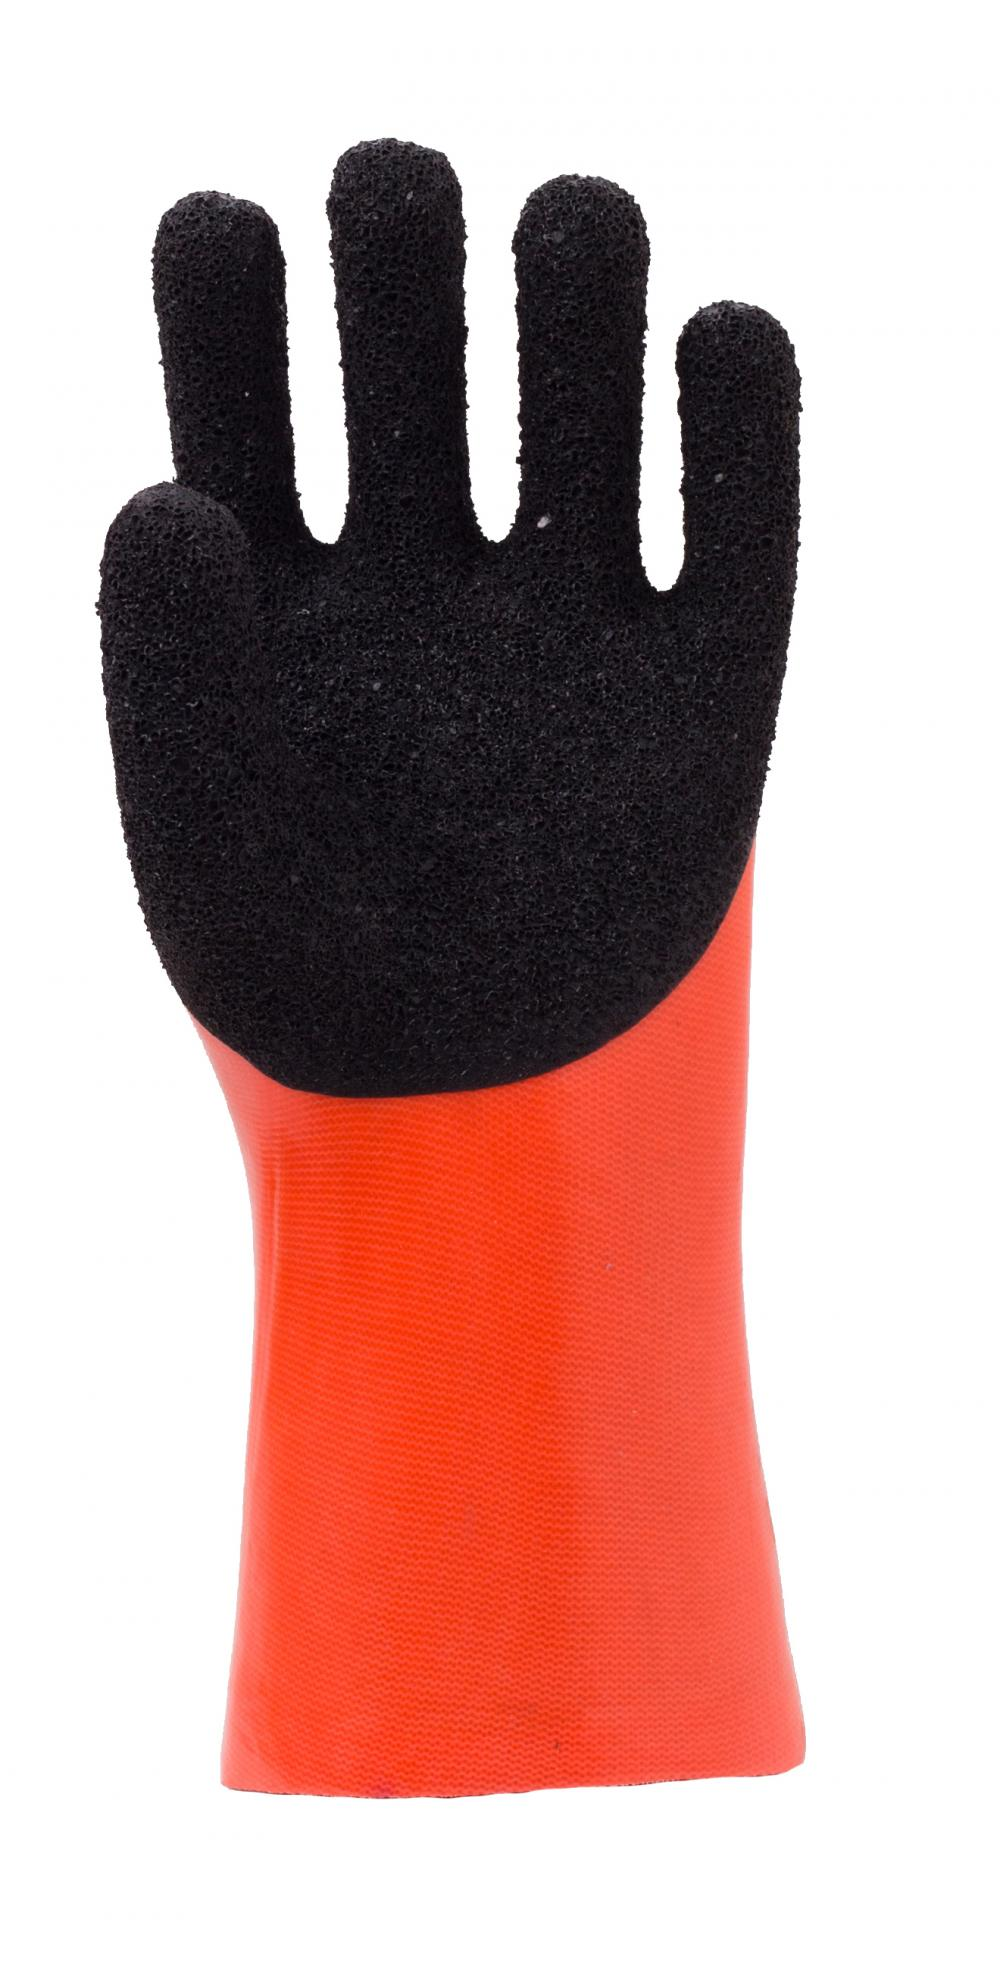 Fluorescent Orange PVC Glove.Black Foam Finish